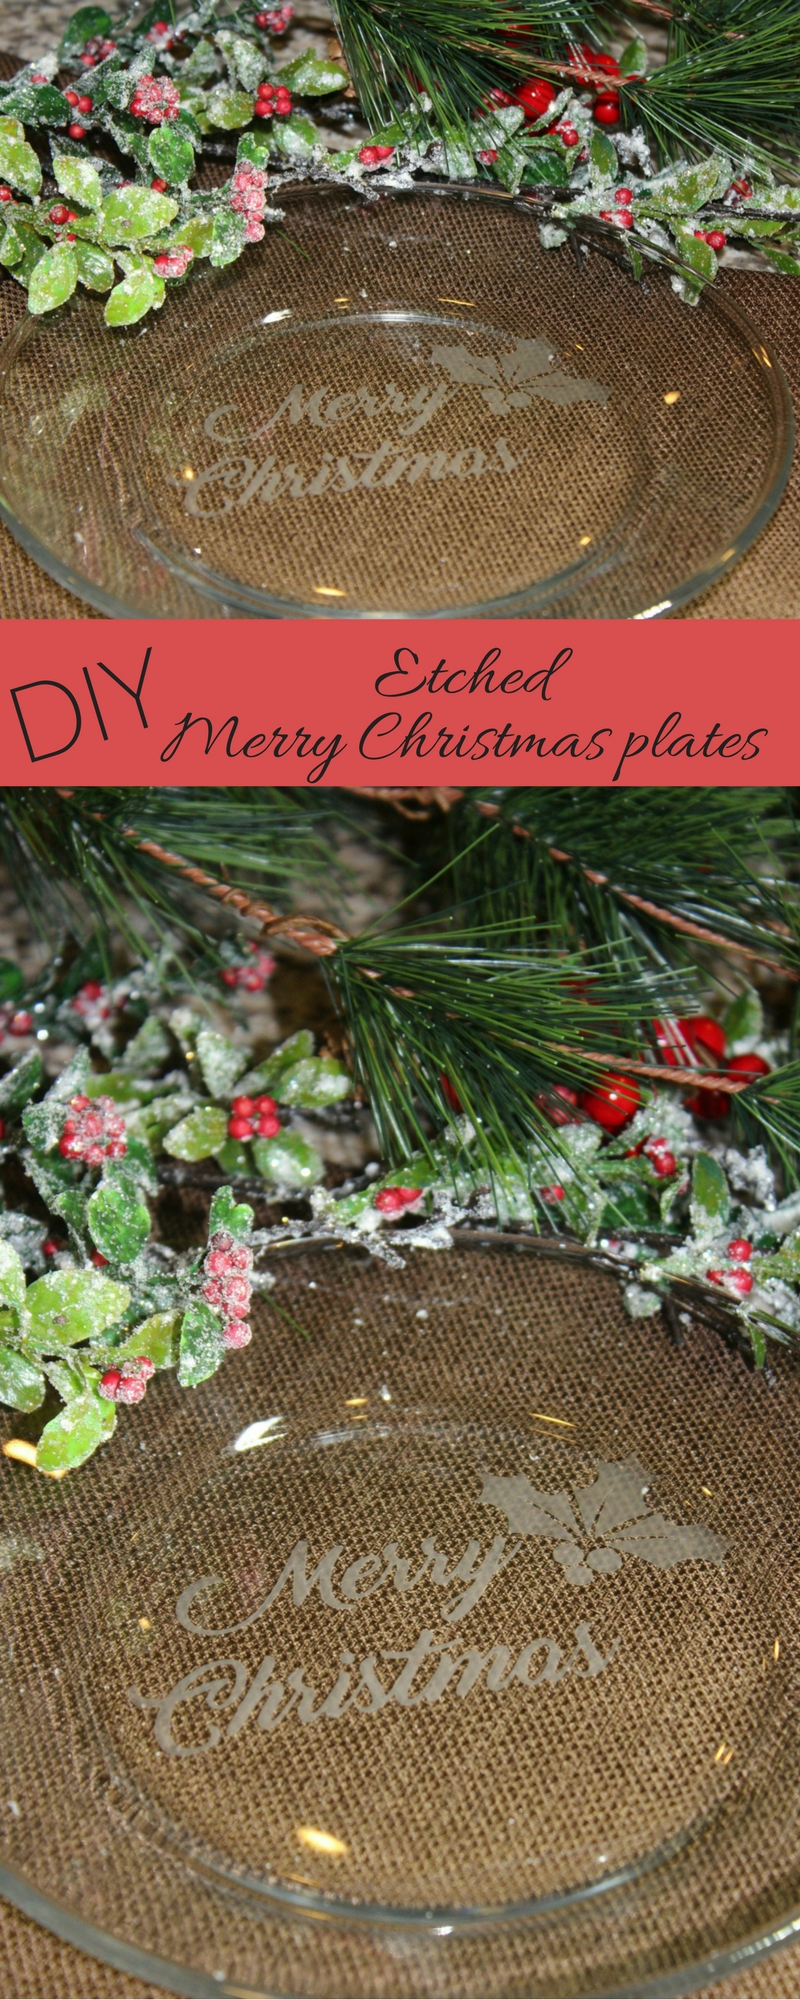 DIY etched Merry Christmas plates eccentricitiesbyjvg.com